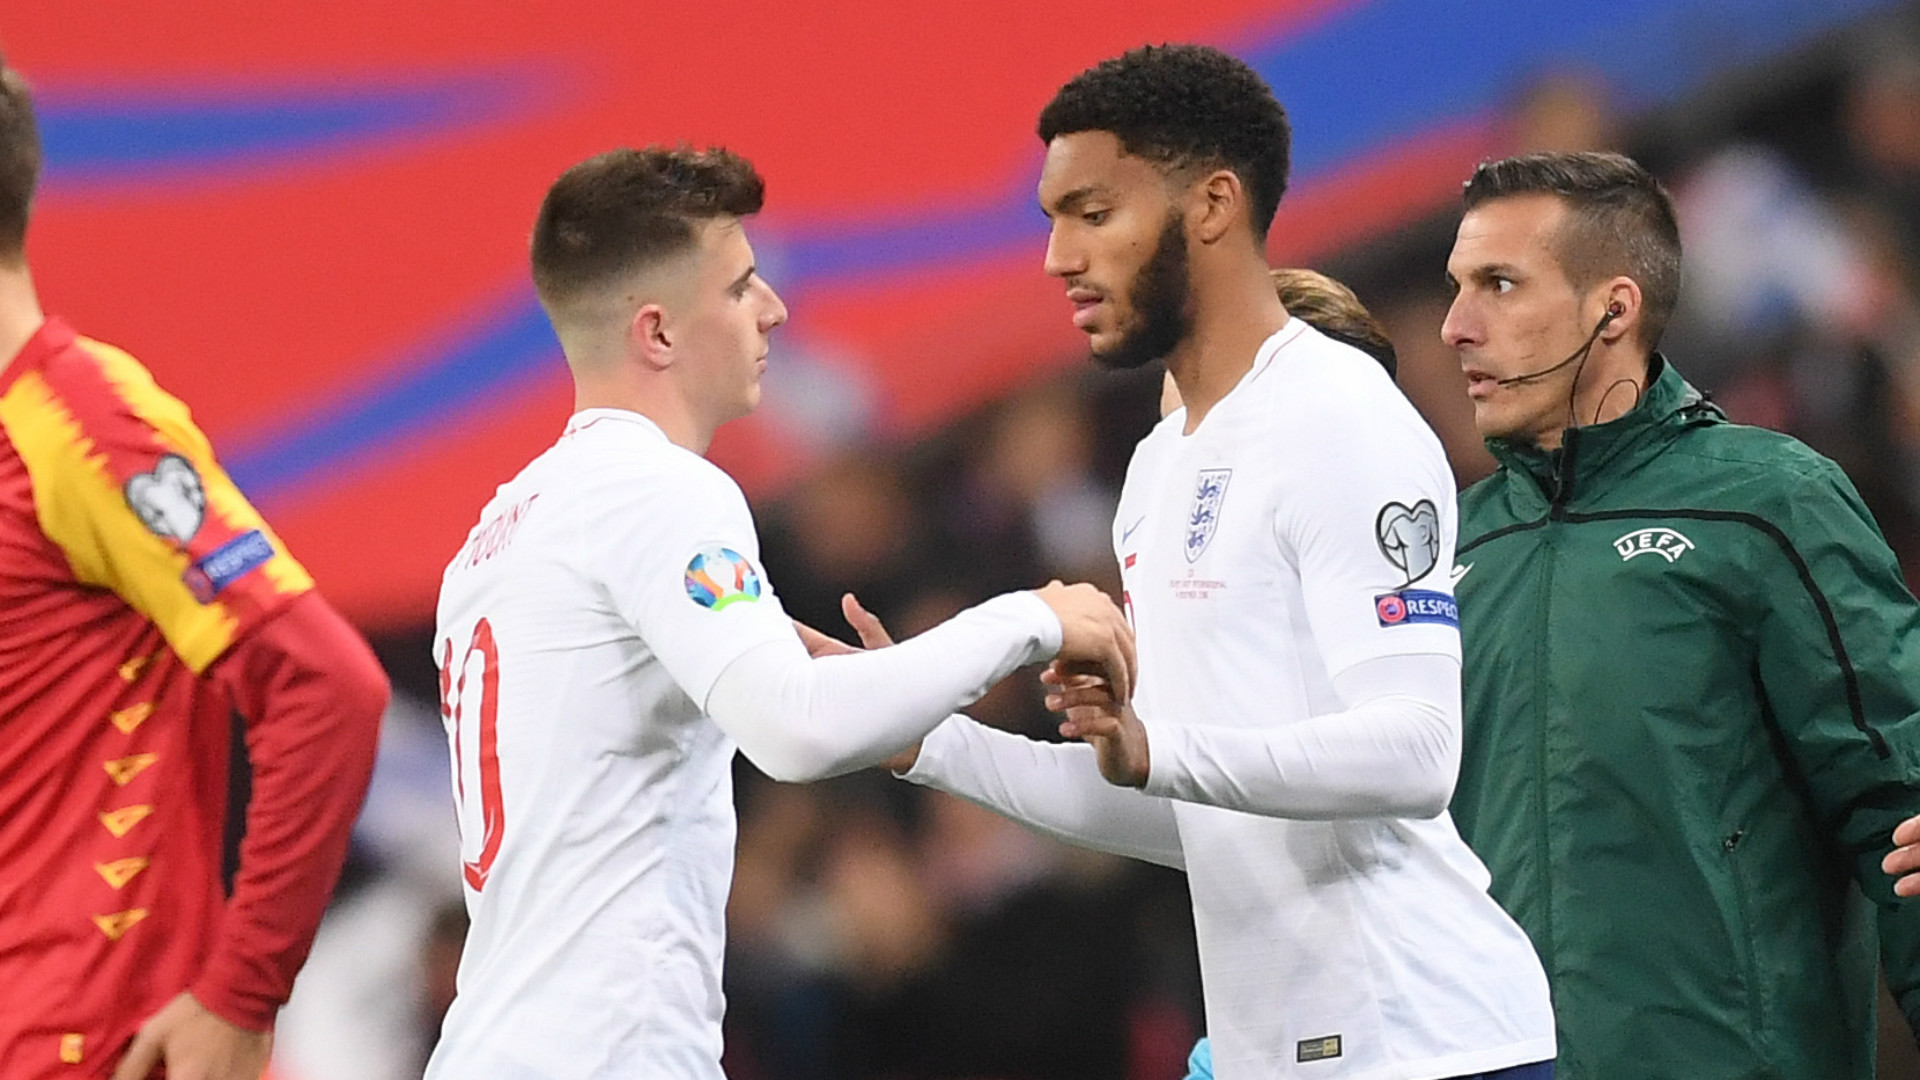 Gomez booed by section of England fans after Sterling bust-up